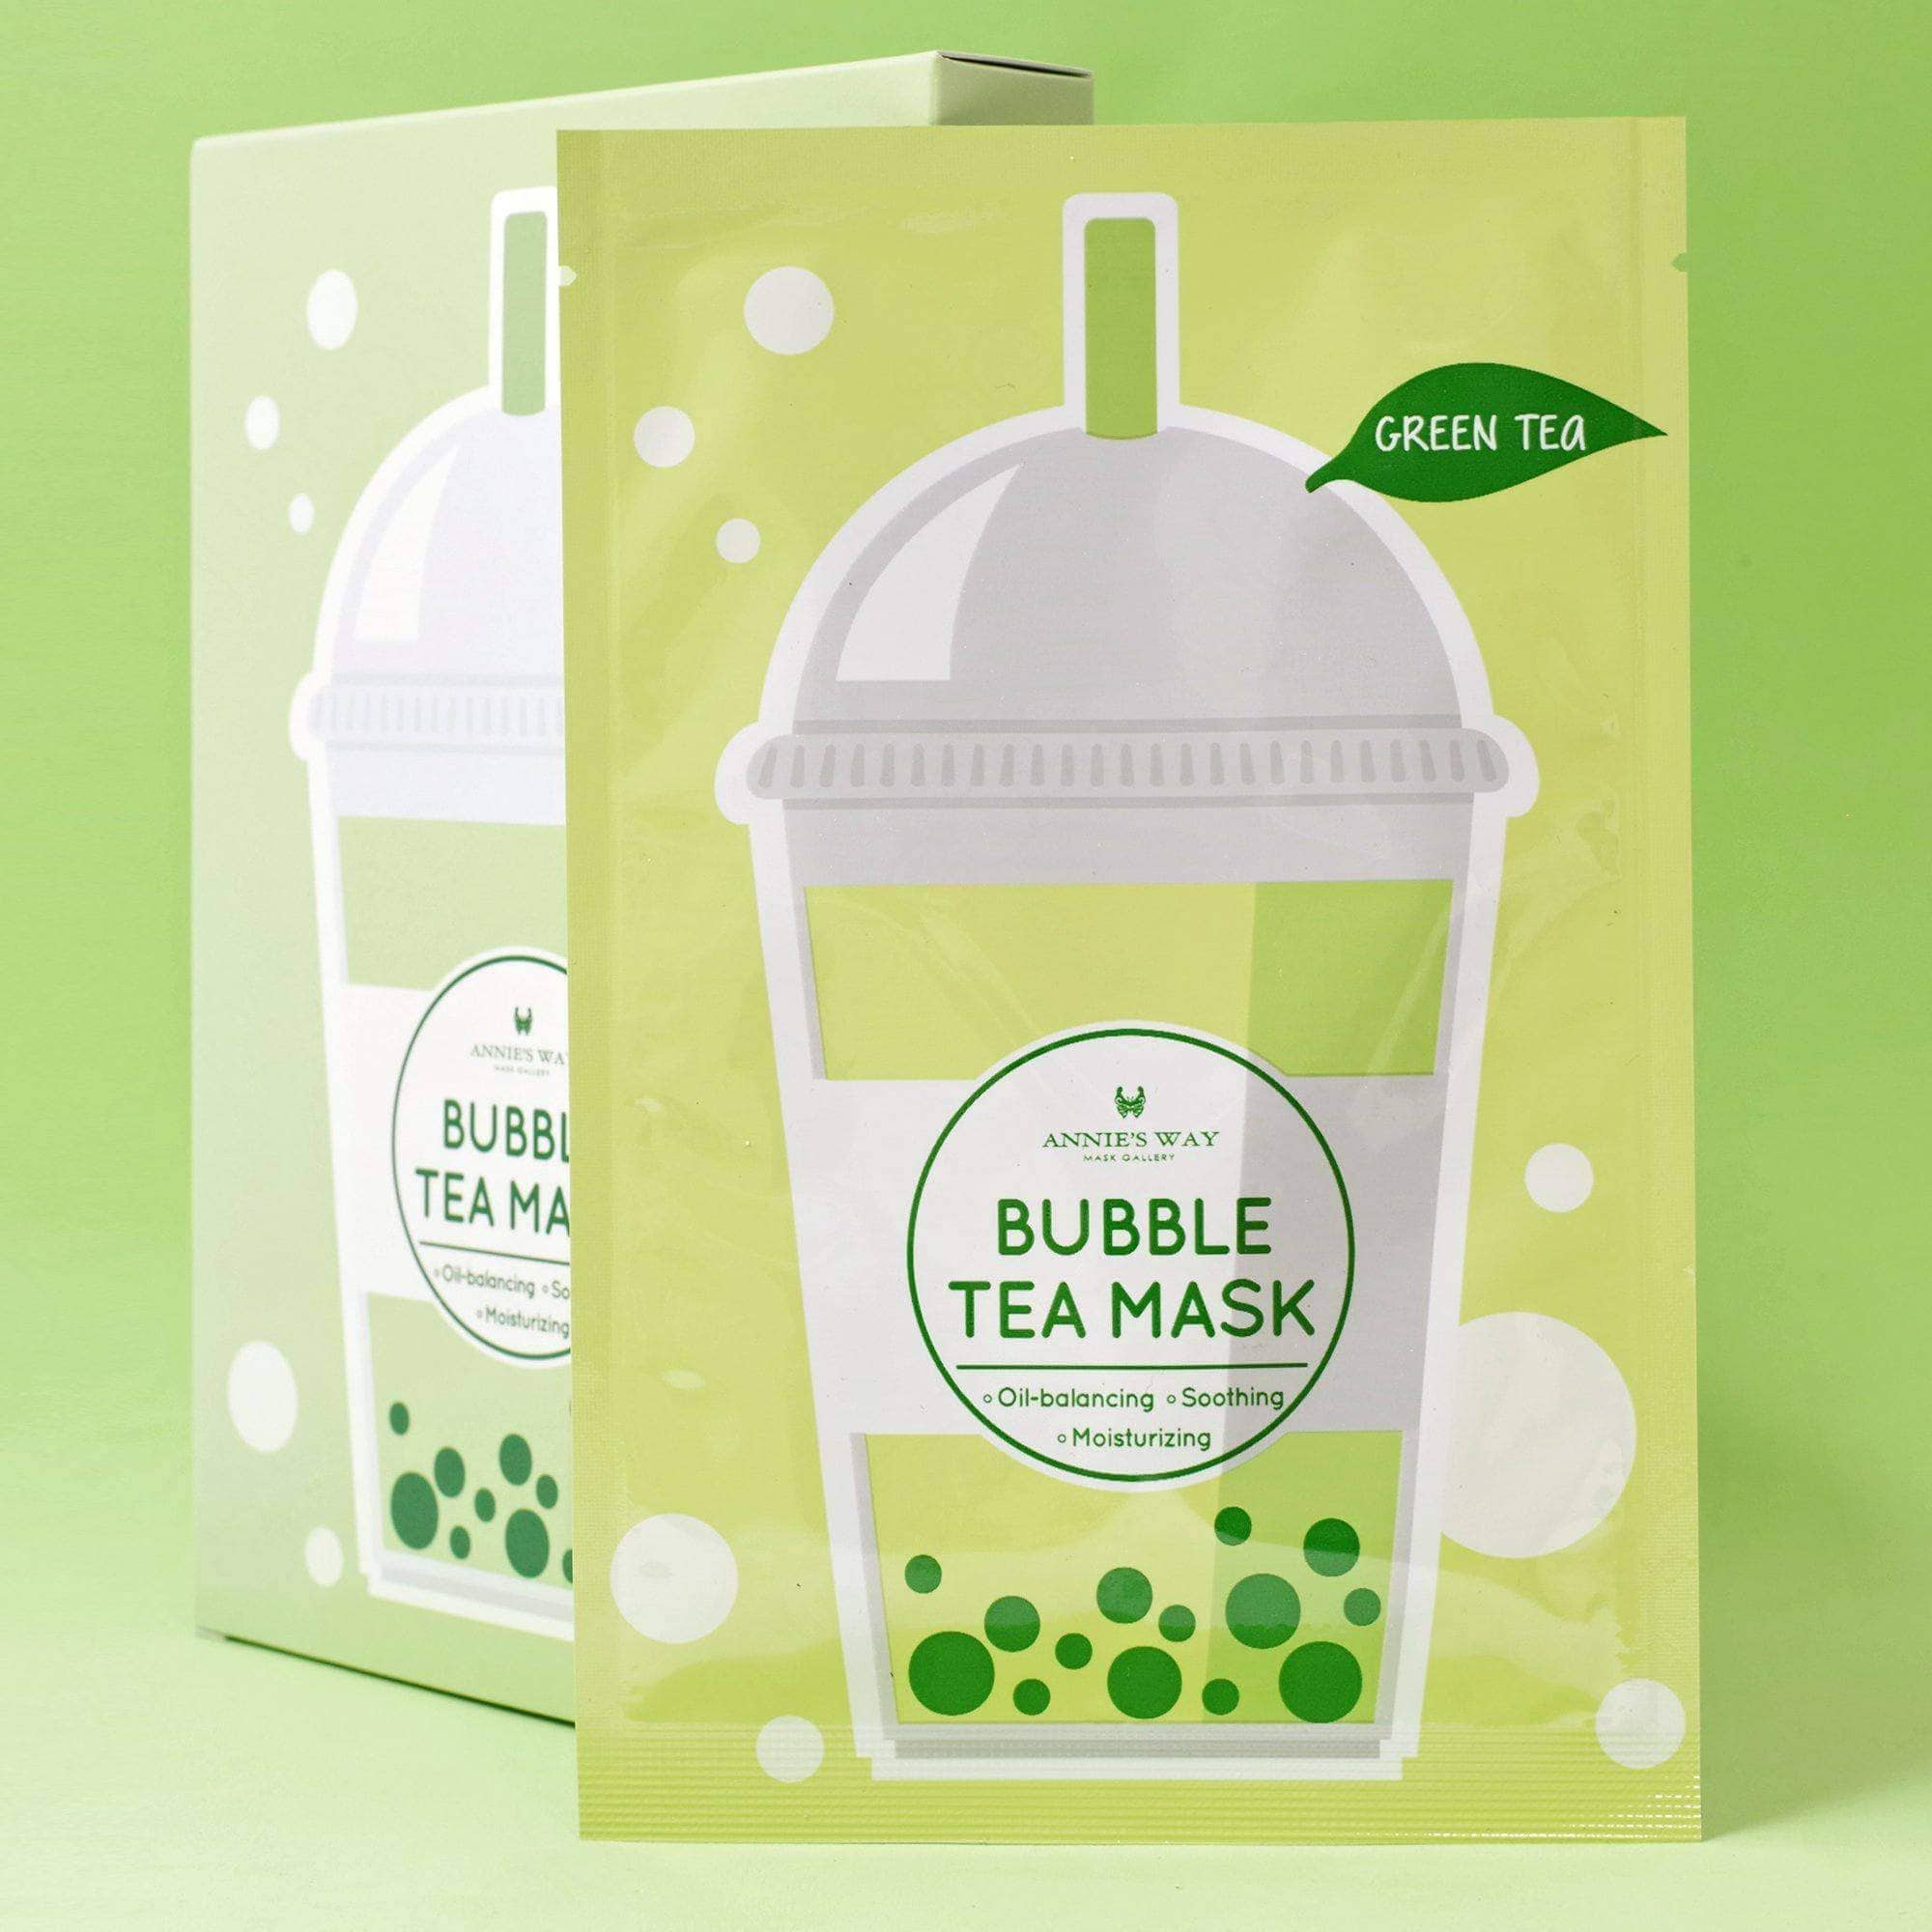 Annie's Way Green Tea Bubble Tea Mask